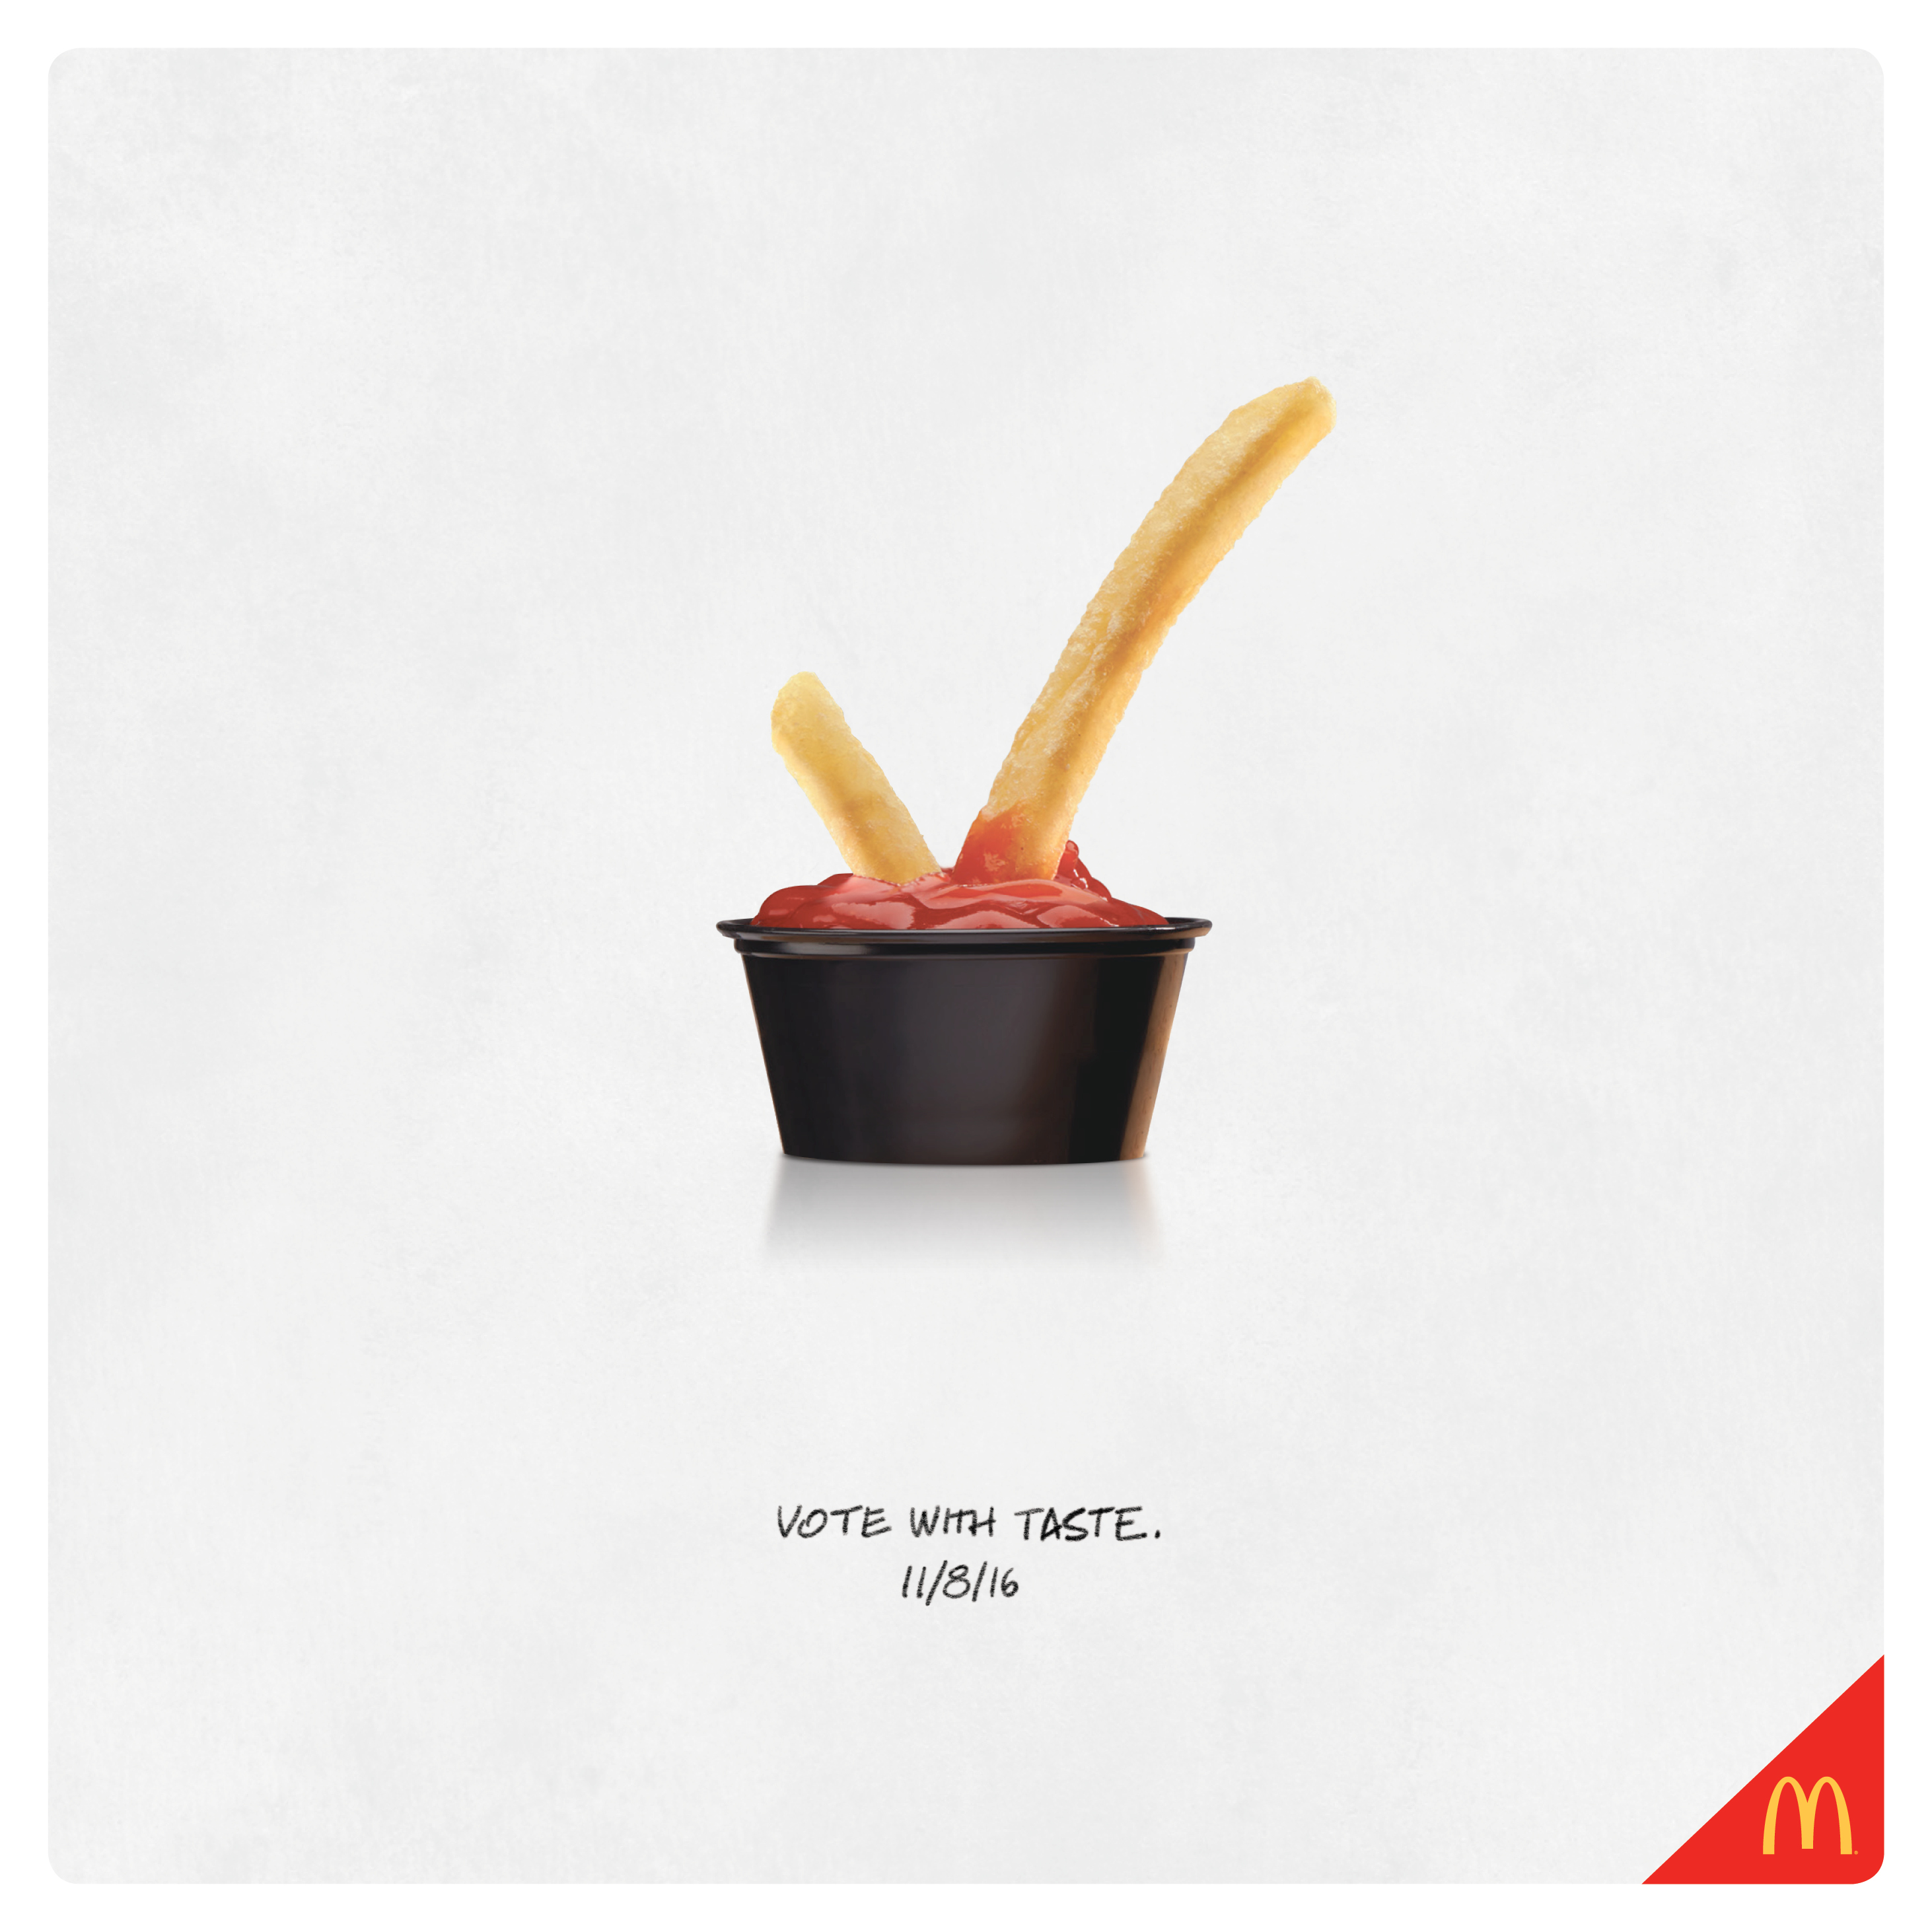 McDonald\'s Print Advert By Moroch: Election Day | Ads of the World™